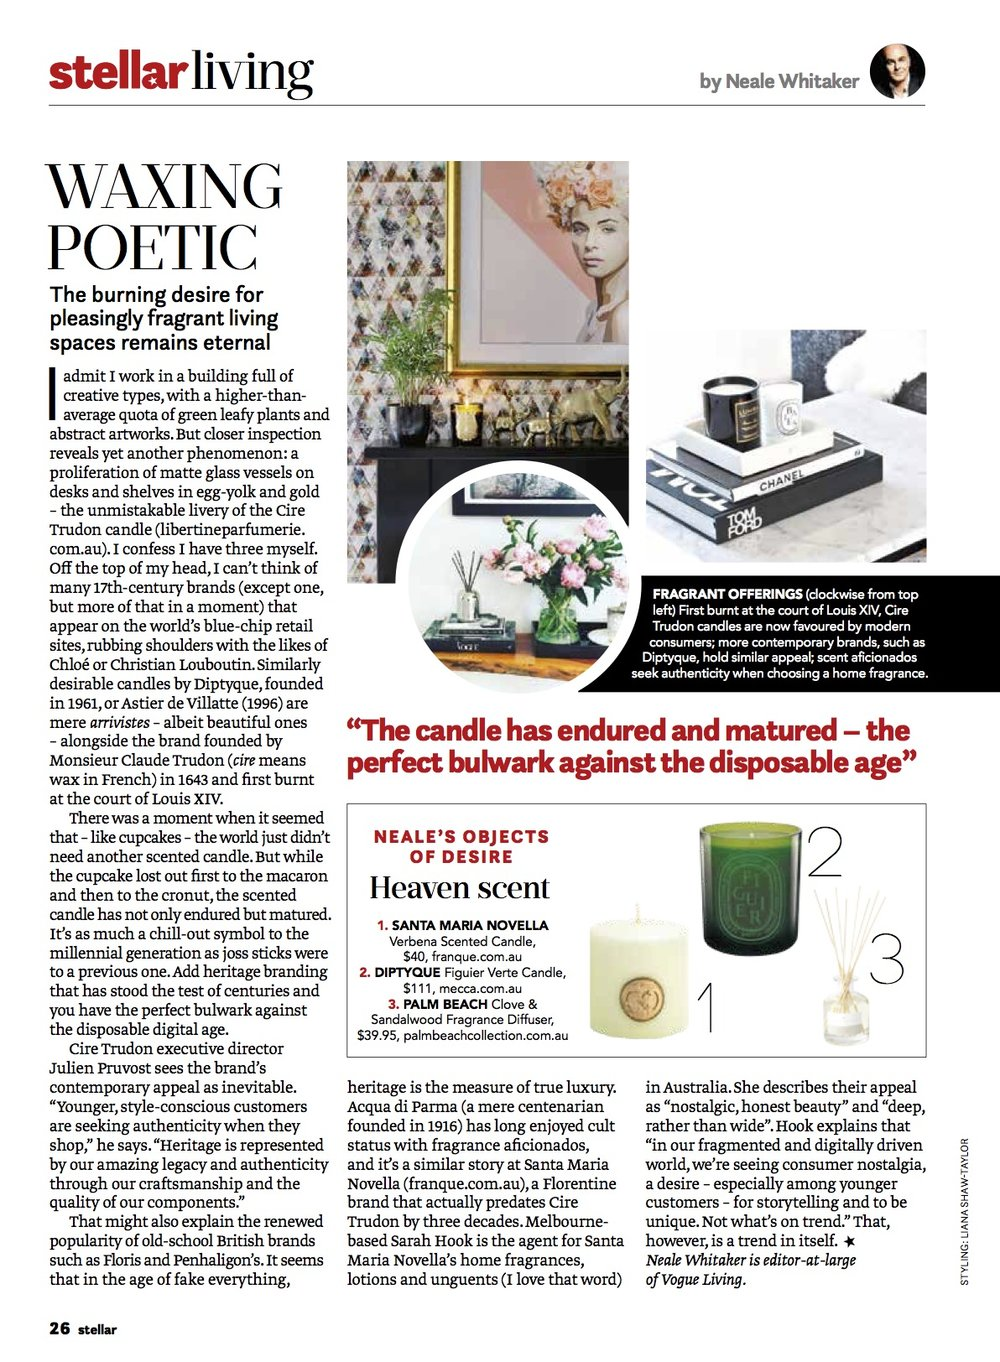 VOGUE LIVING REVIEW  Neale Whitaker